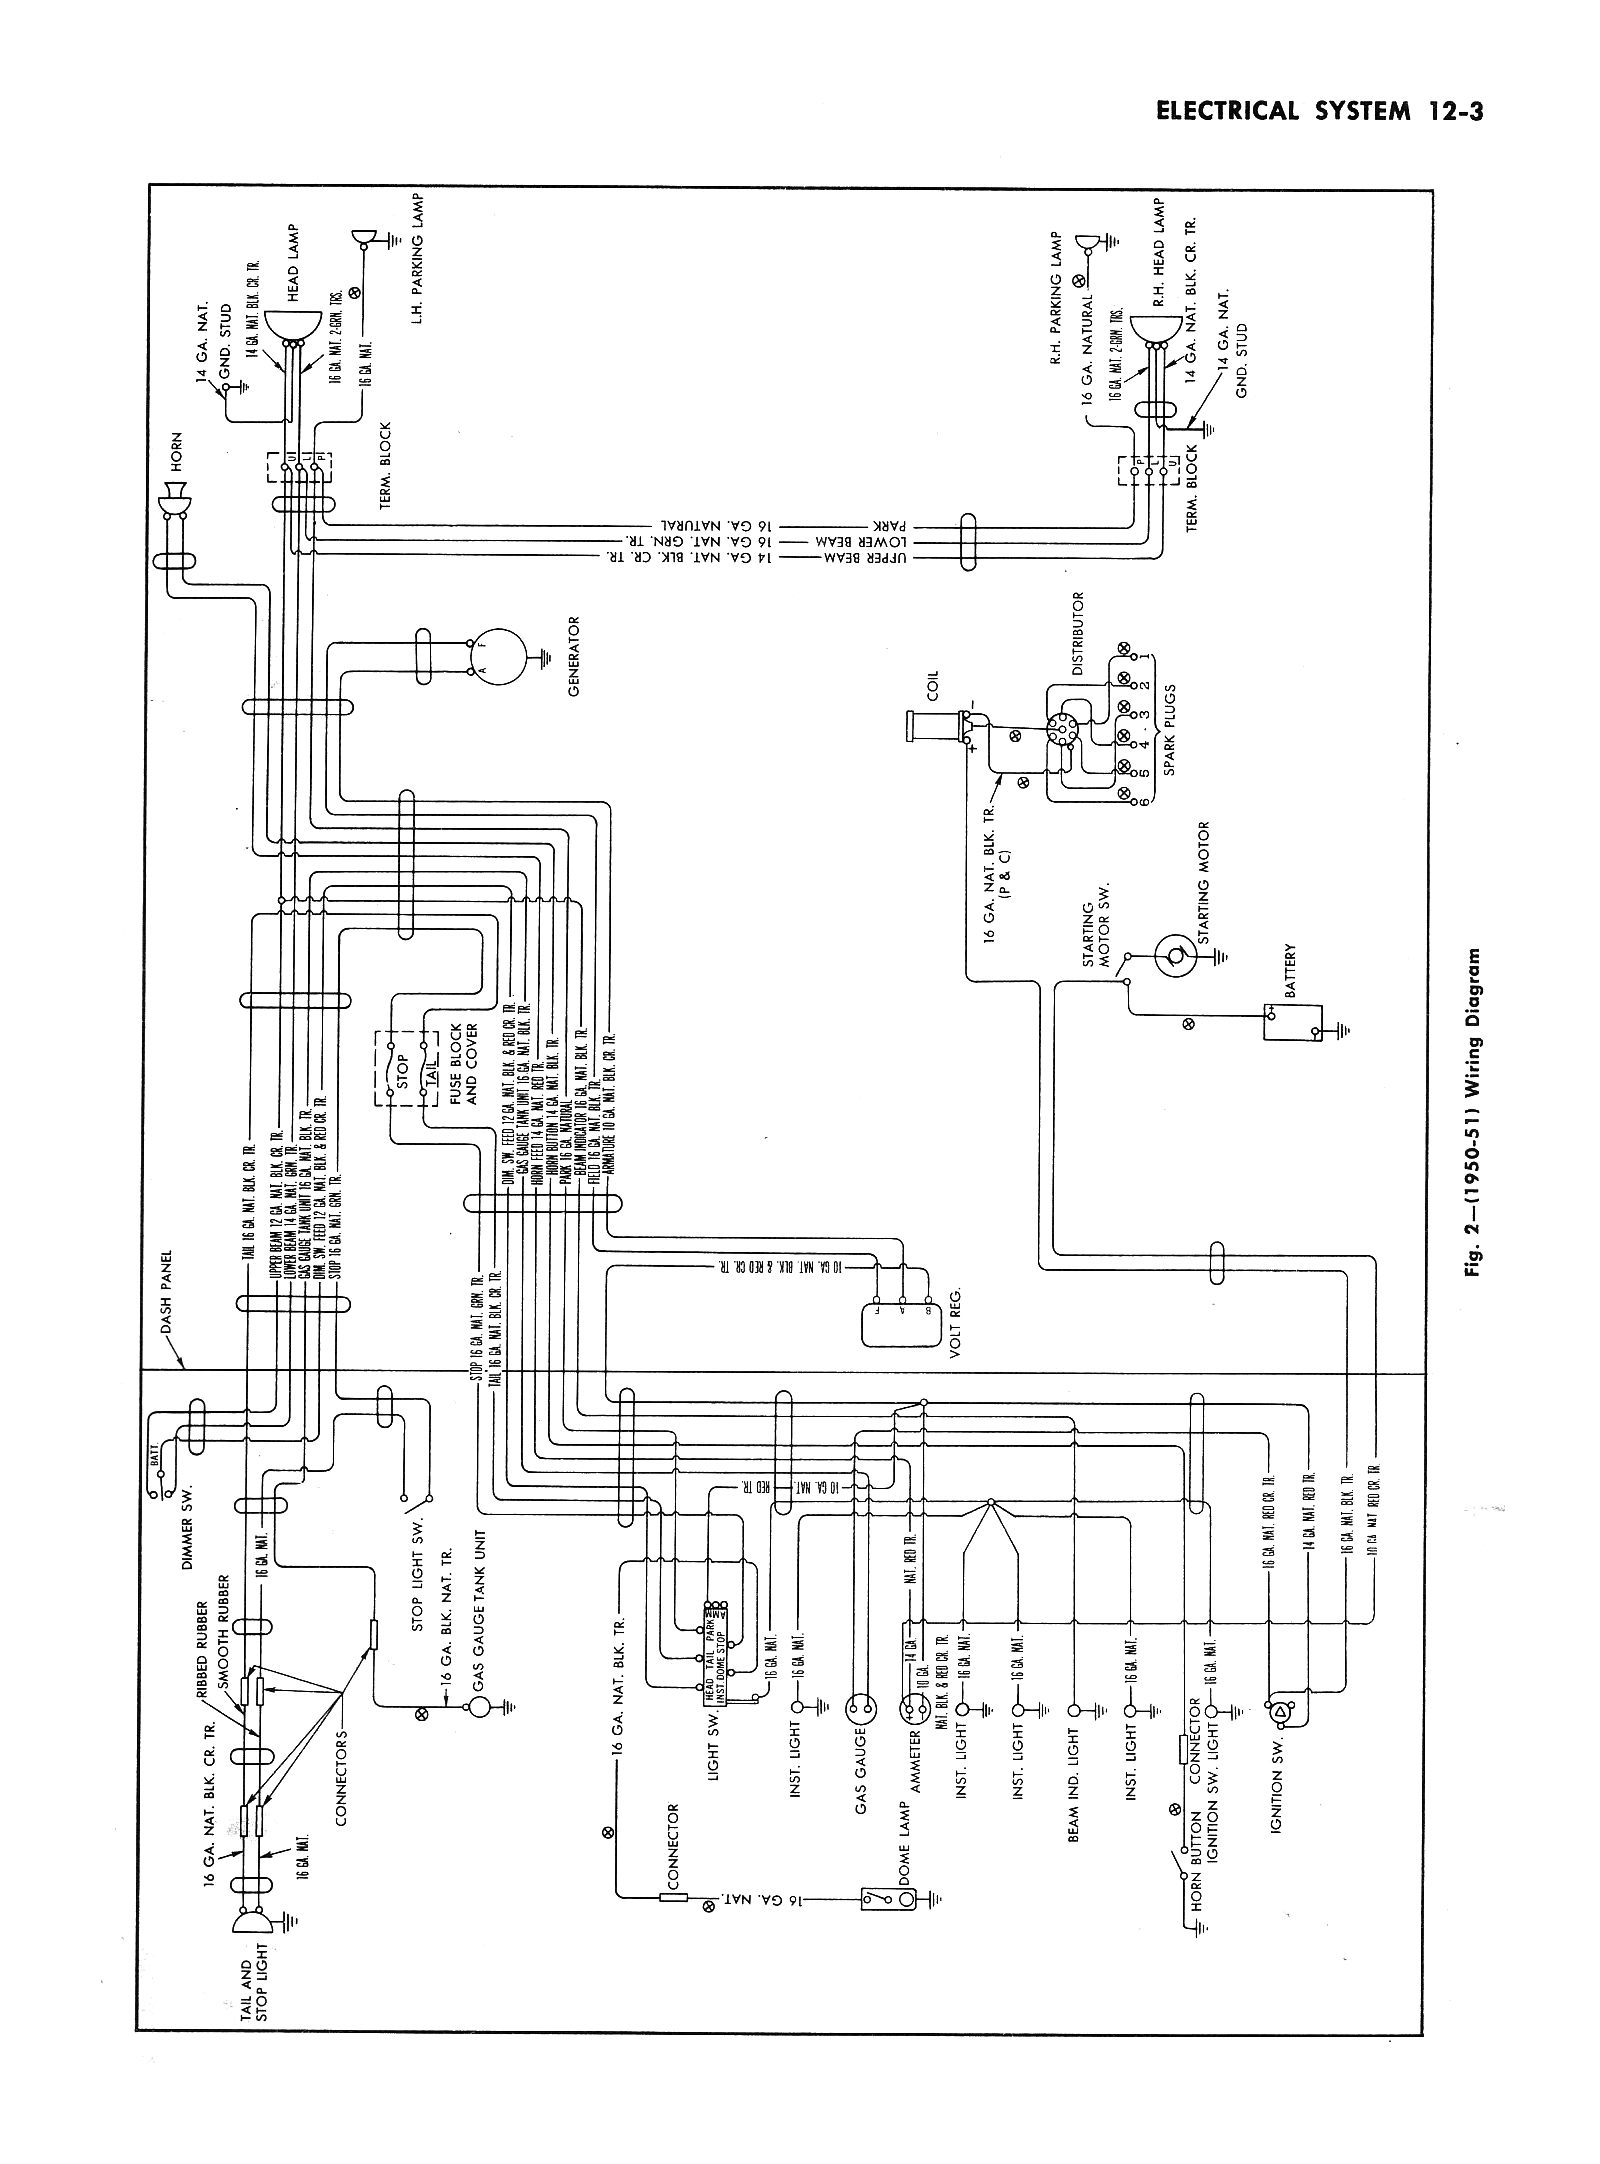 52 chevy pickup wiring diagram wiring diagrams